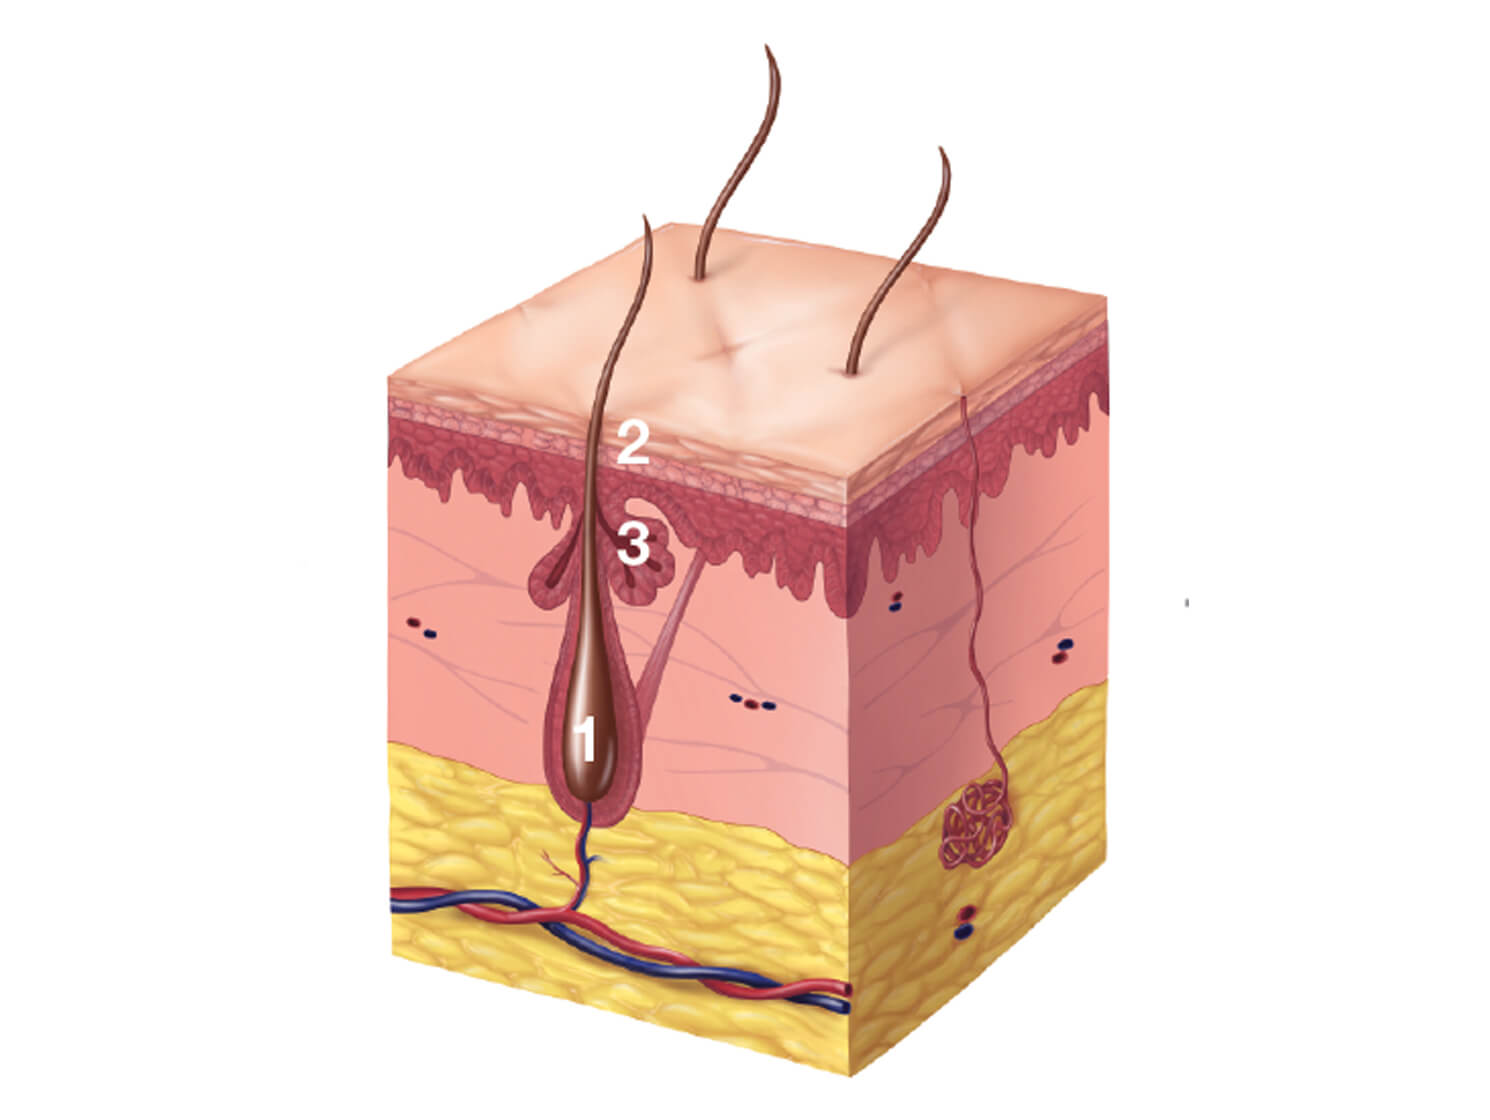 Illustration of a normal follicle